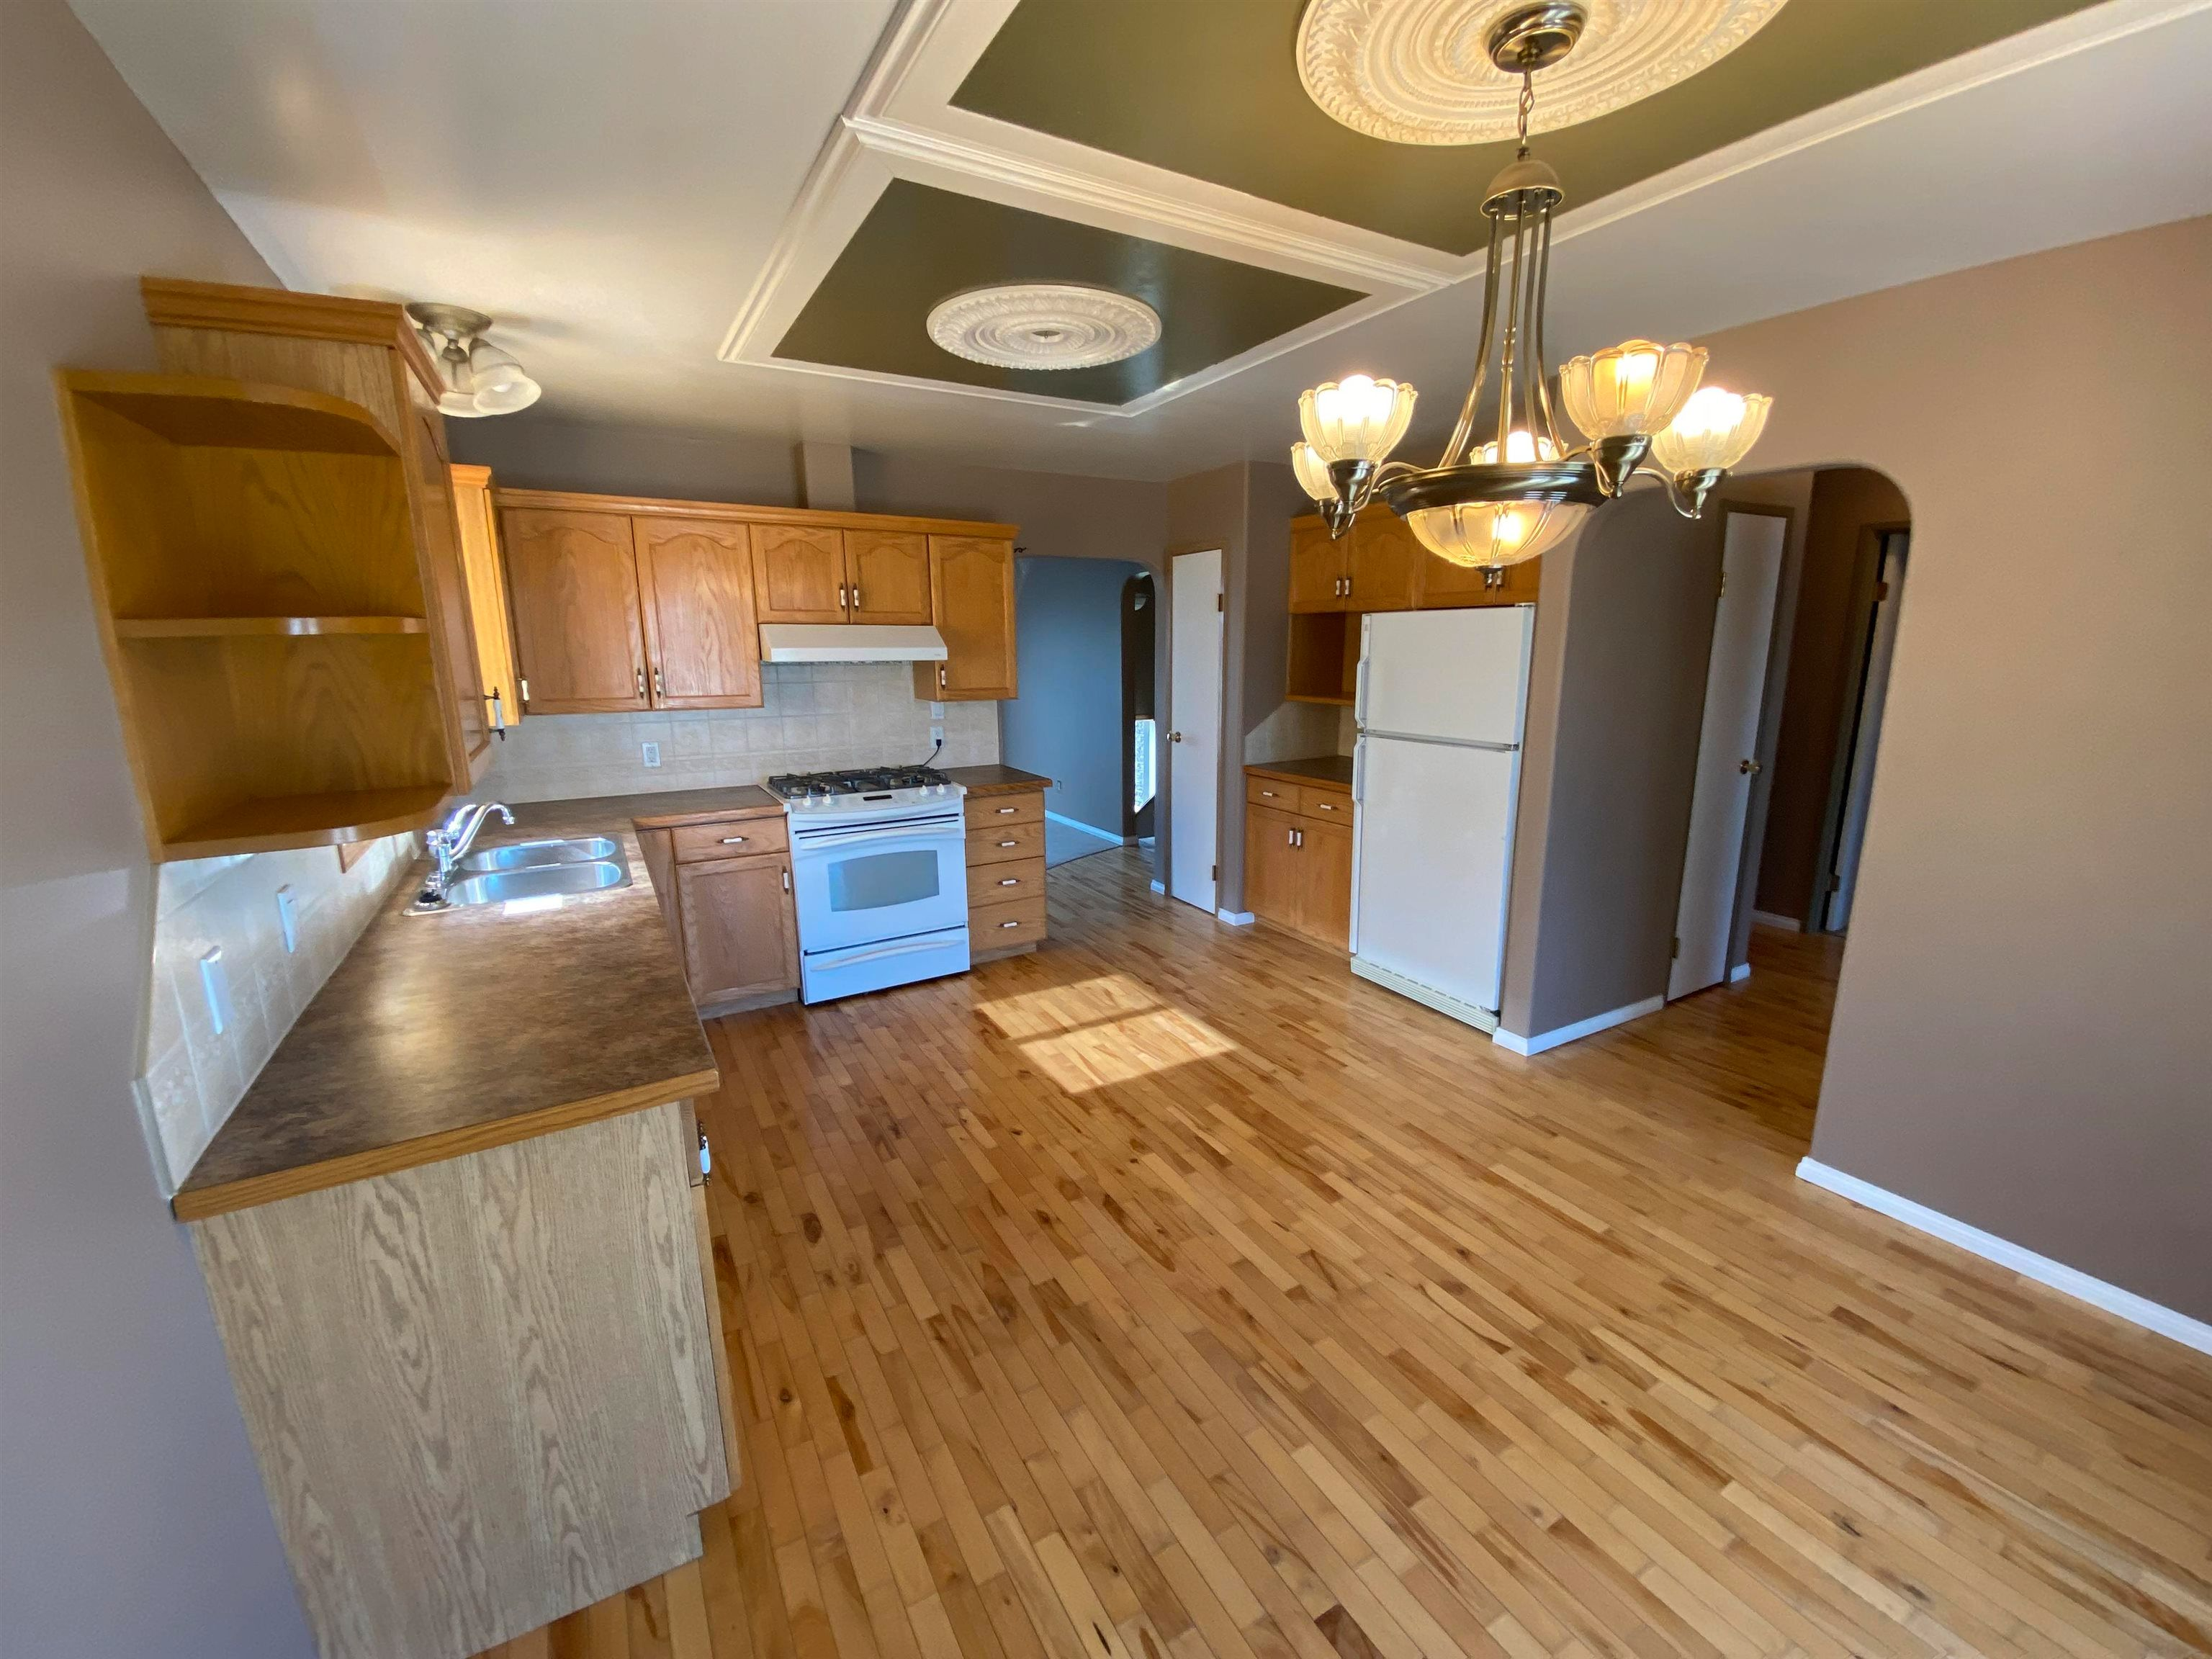 Photo 8: Photos: 10223 101 Street: Taylor House for sale (Fort St. John (Zone 60))  : MLS®# R2610570